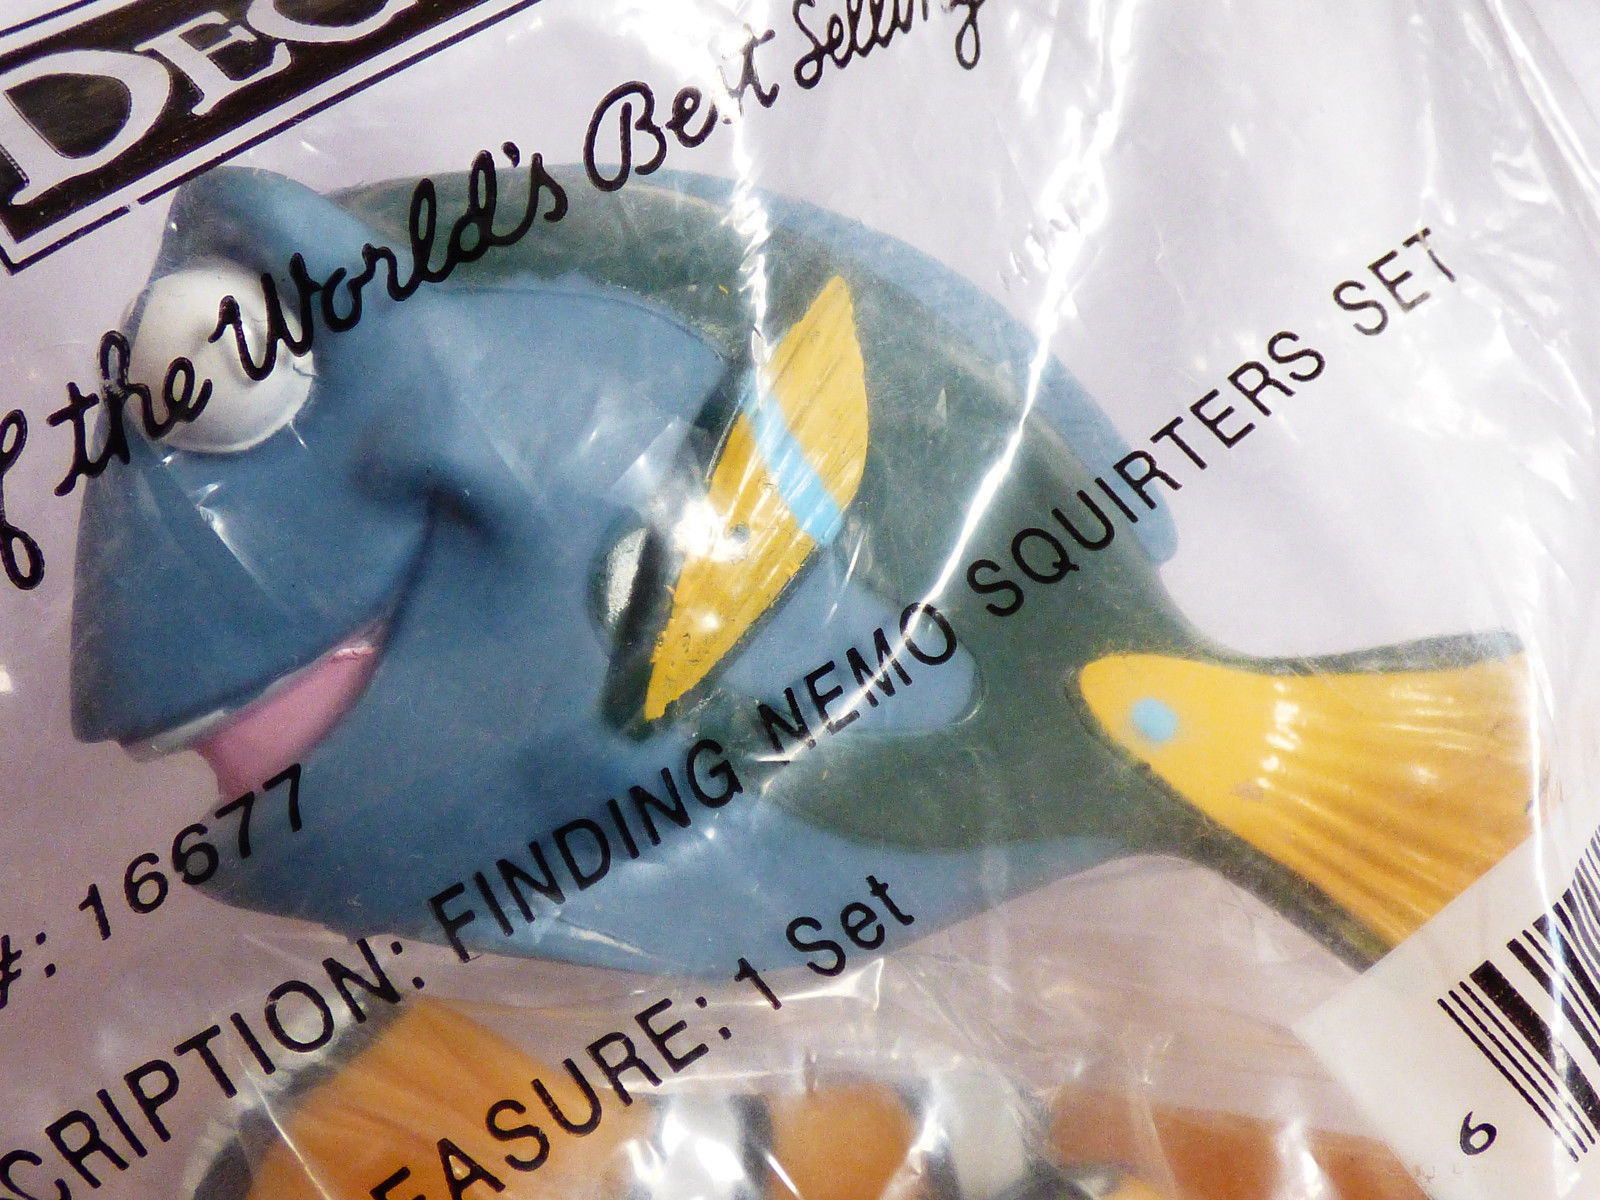 Bakery DecoPac Finding Nemo Squirters Toys Cake Kit Toppers NIB